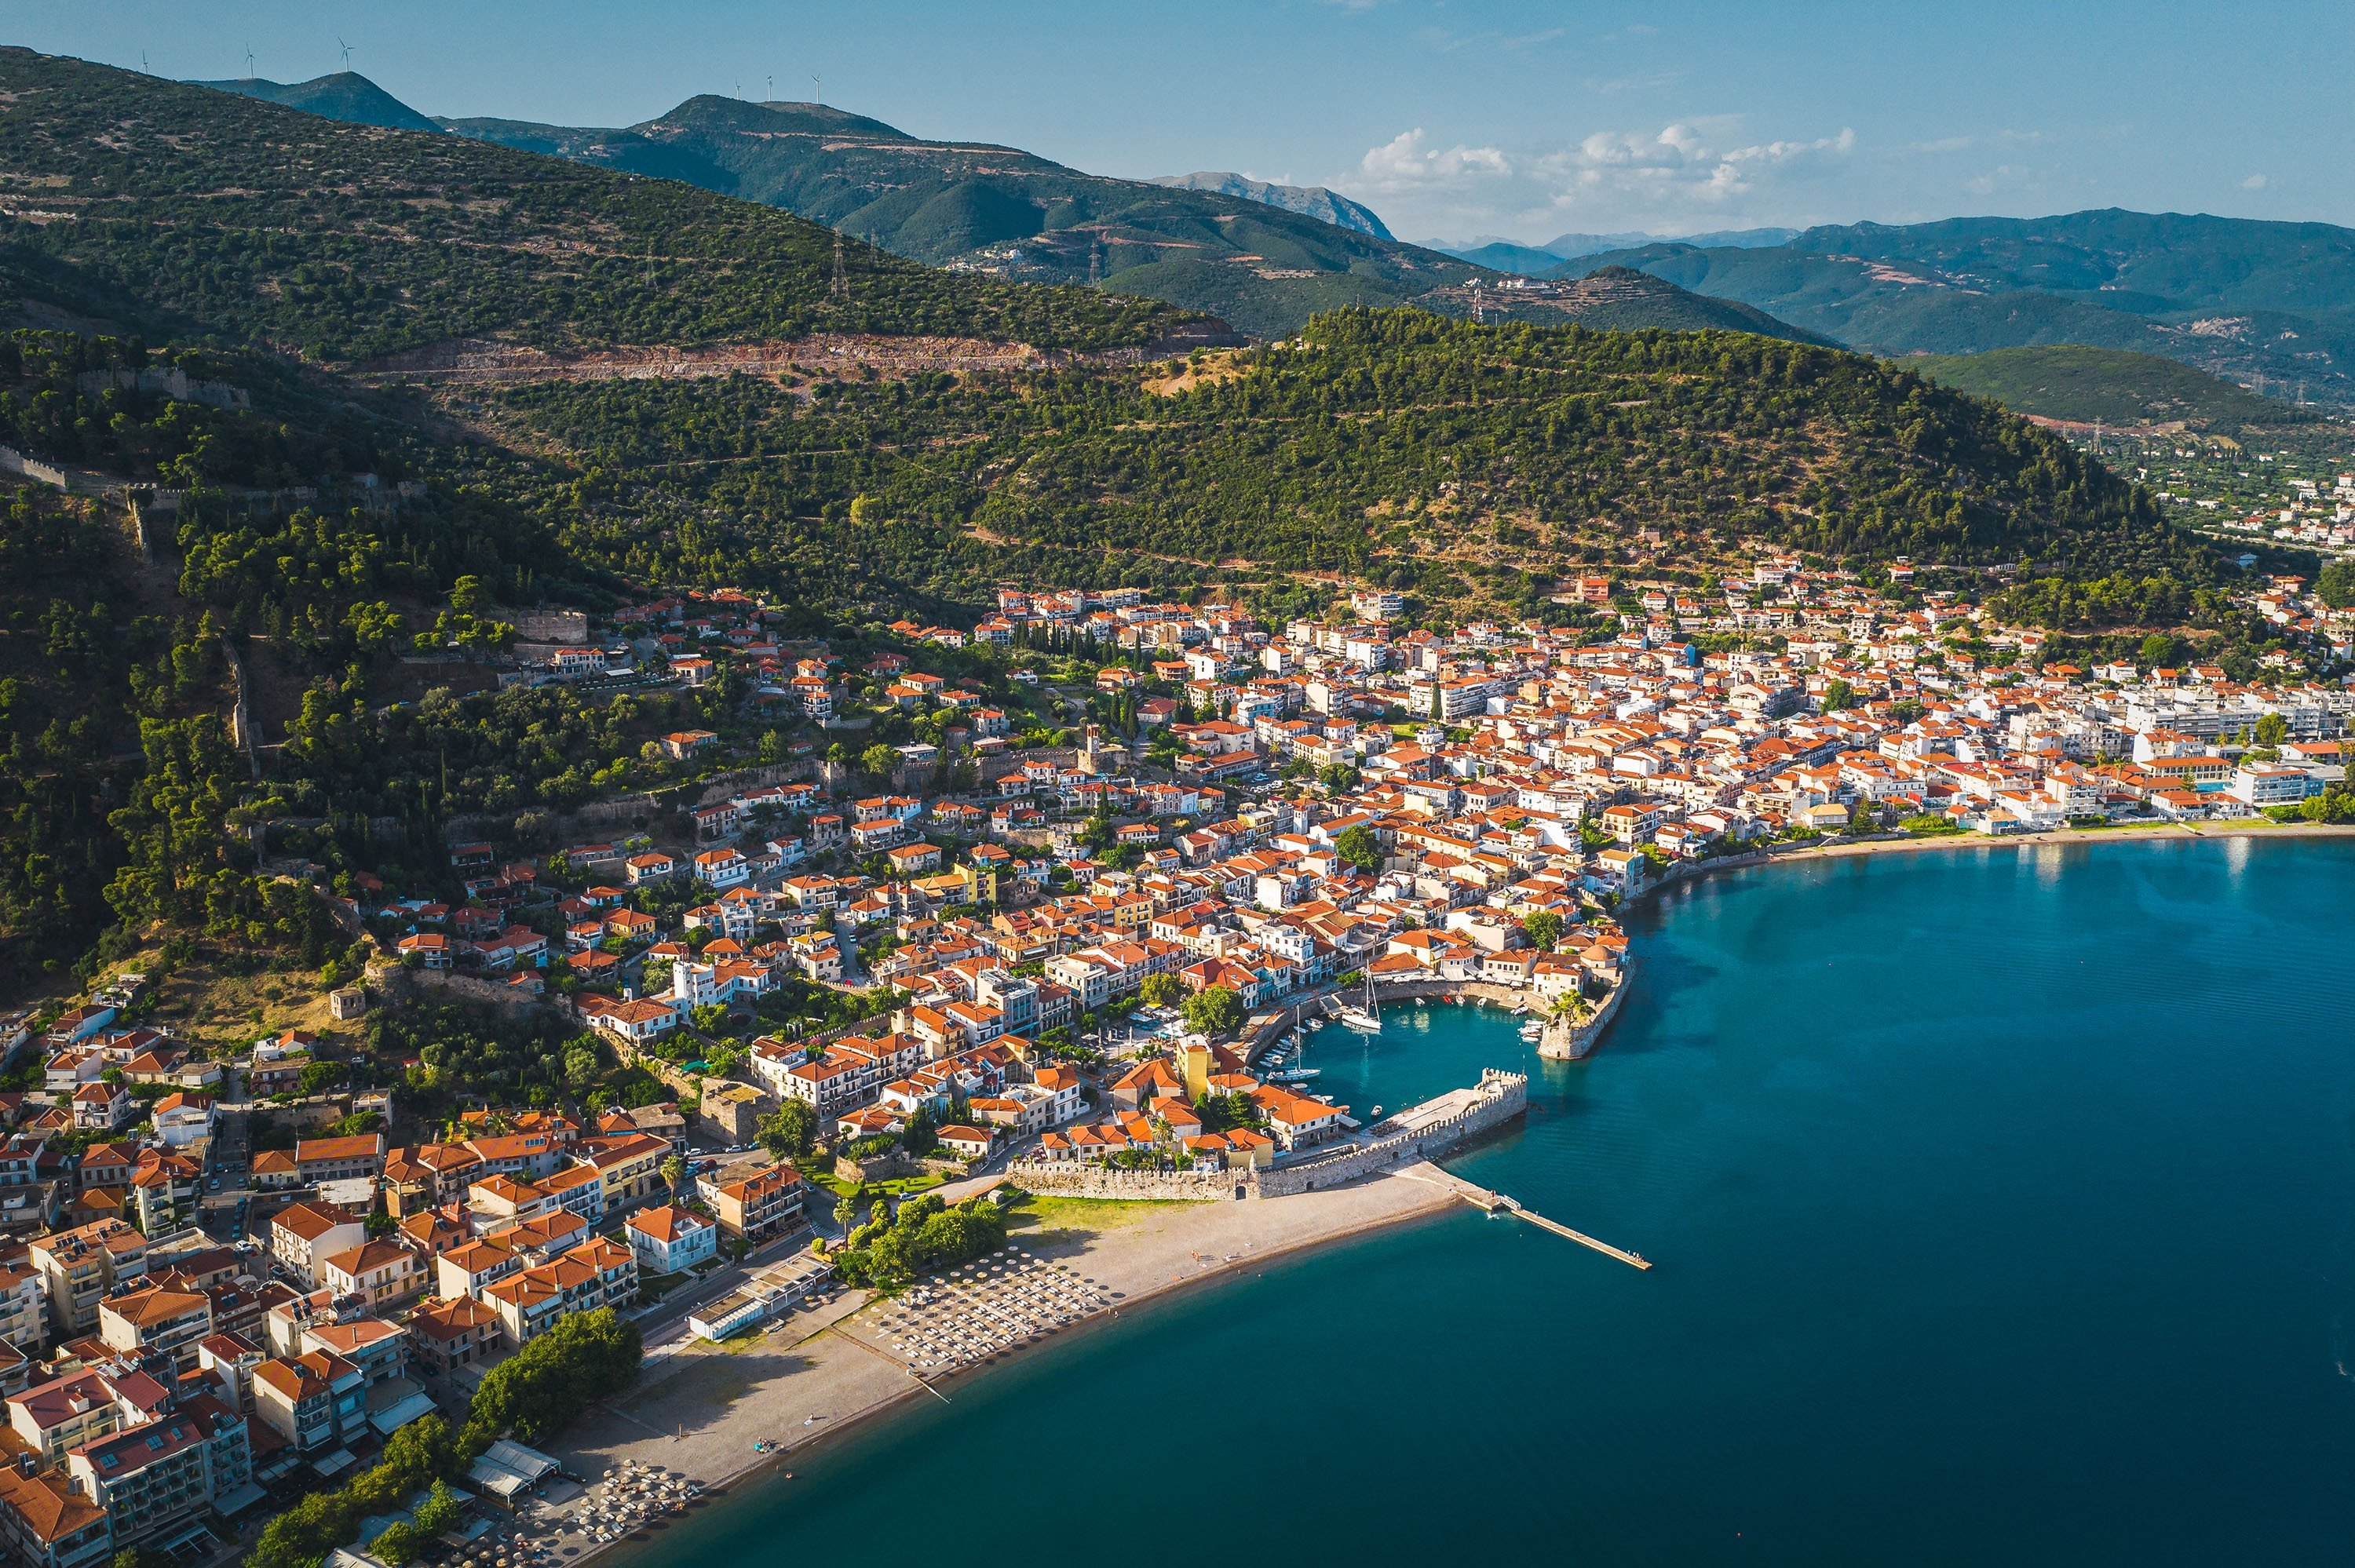 The old harbor of Nafpaktos, known as Lepanto during part of its history, in modern-day Greece. (Getty Images)